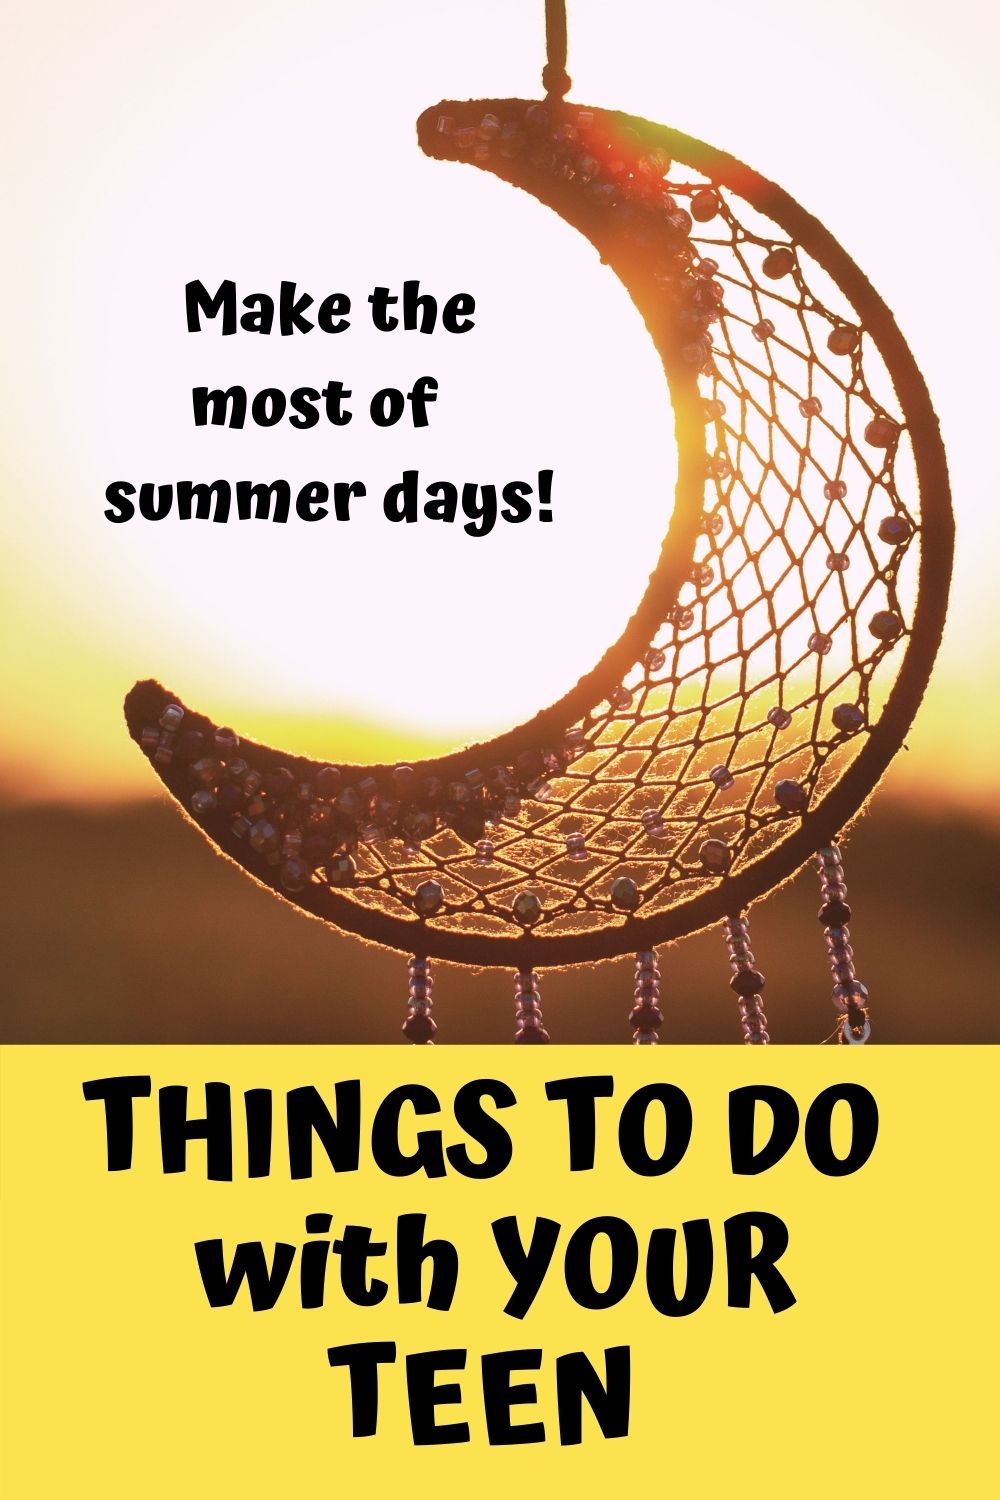 Things to do with your teen. Make the most of summer days! A moon catcher.